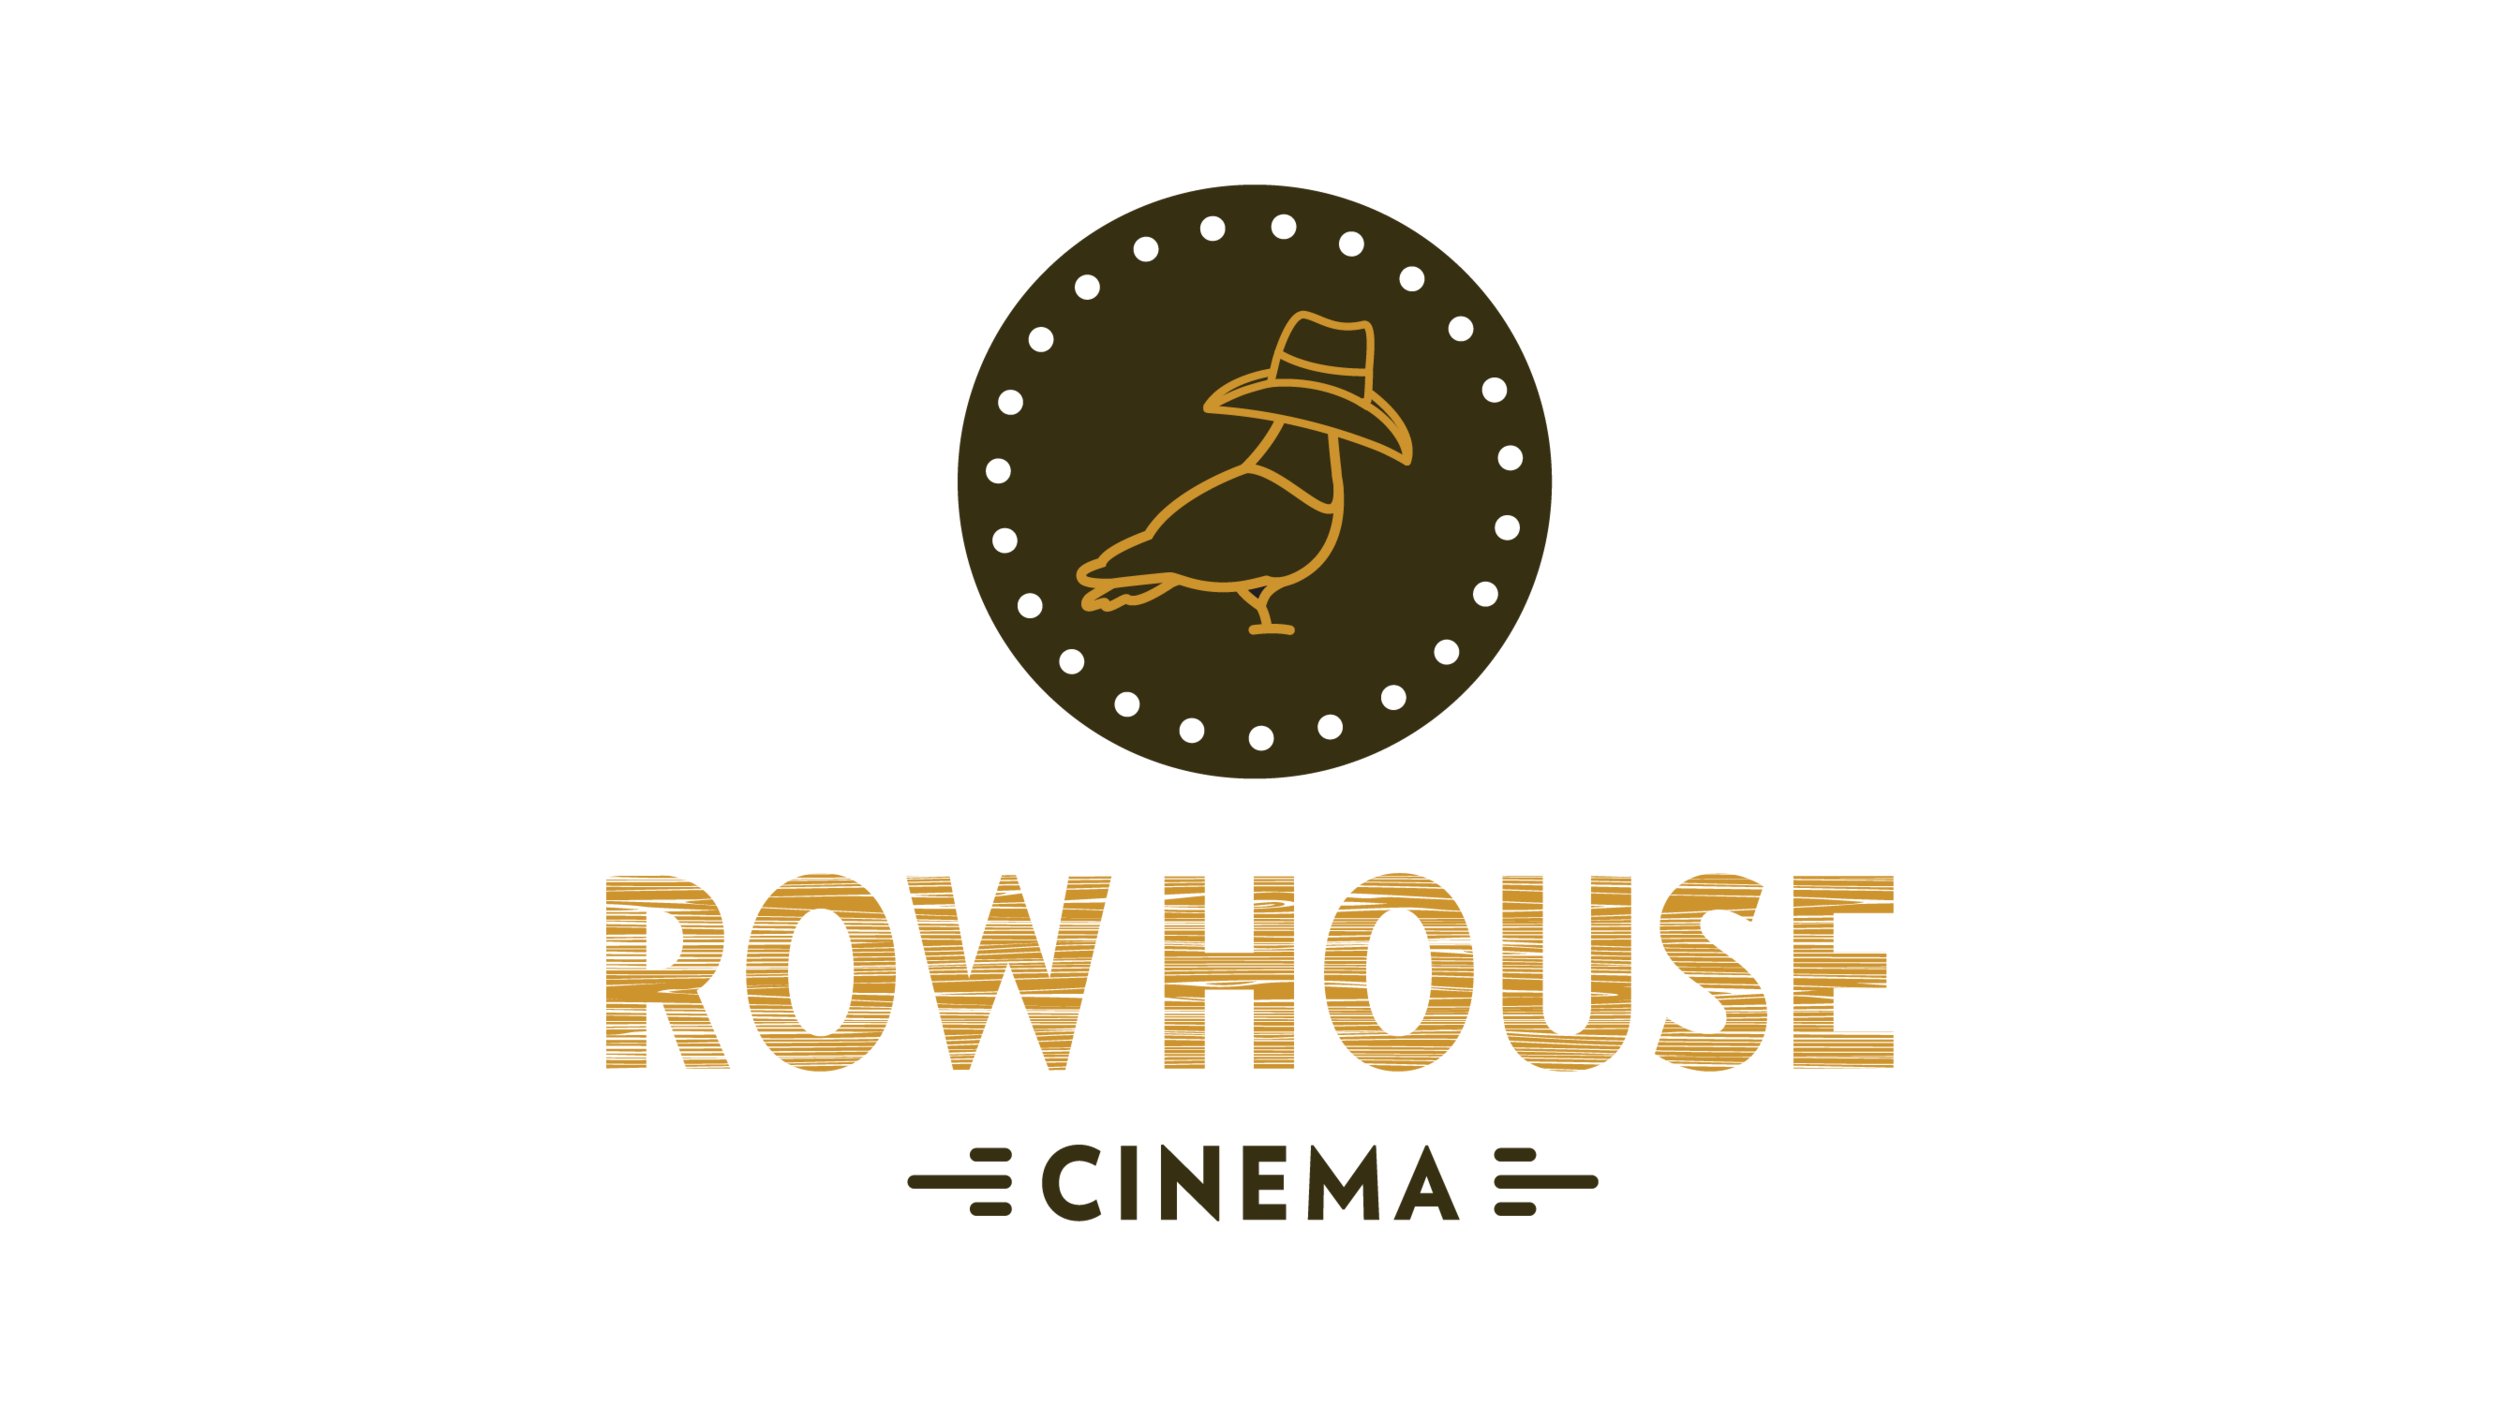 Arts-and-Culture_Special-Event-Branding_Row-House-Cinema_Bootstrap-Design-Co-02.png